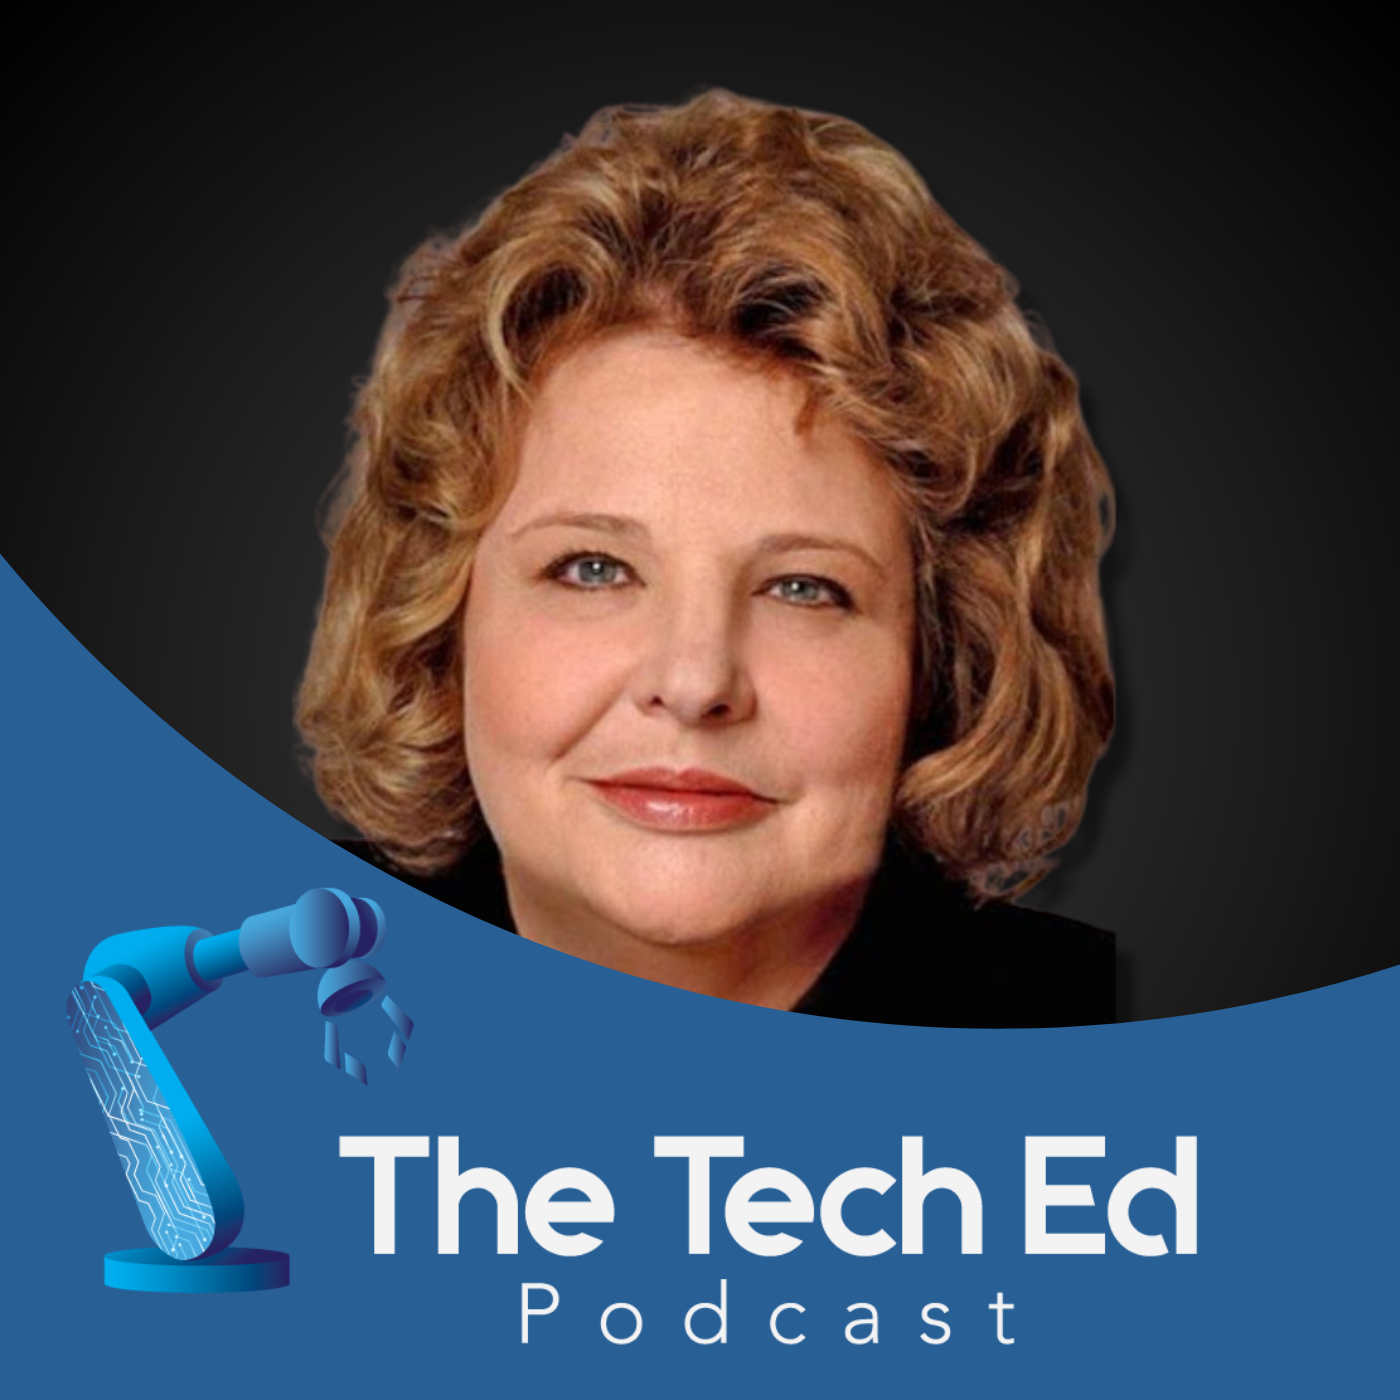 Emily DeRocco on The TechEd Podcast